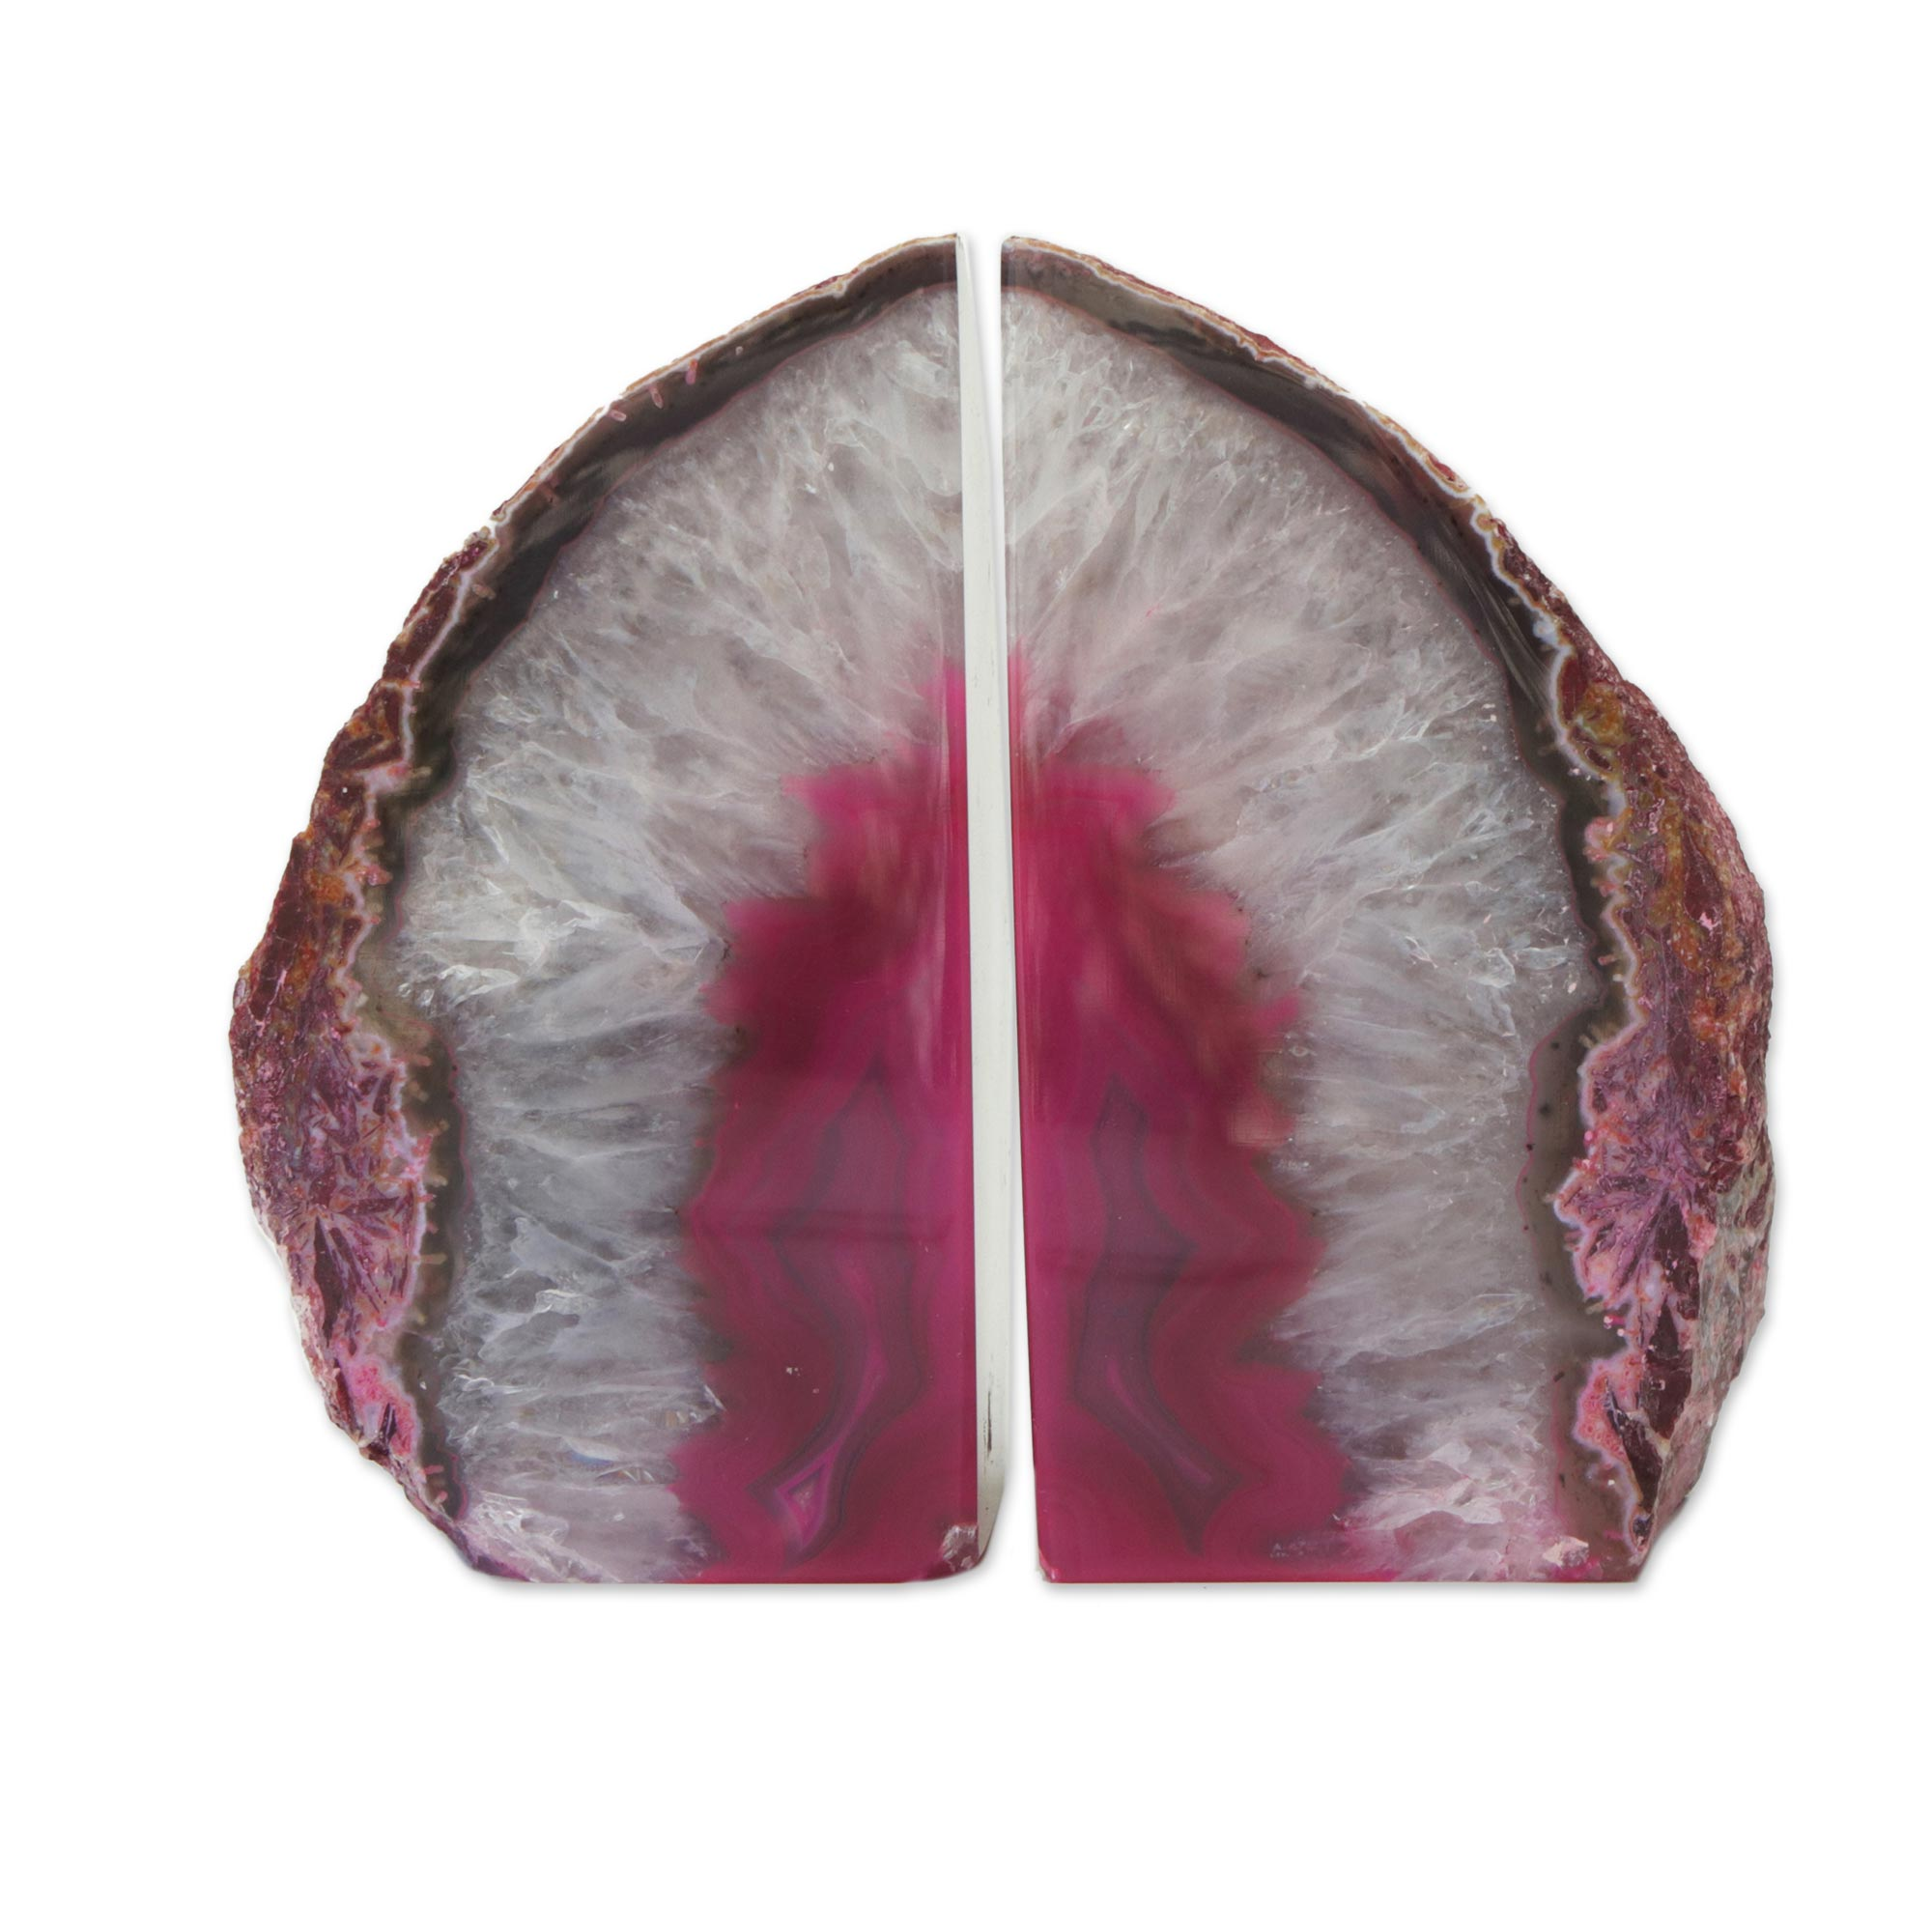 Unicef Market Agate Geode Bookends With A Pink Core From Brazil Lovely Crystal